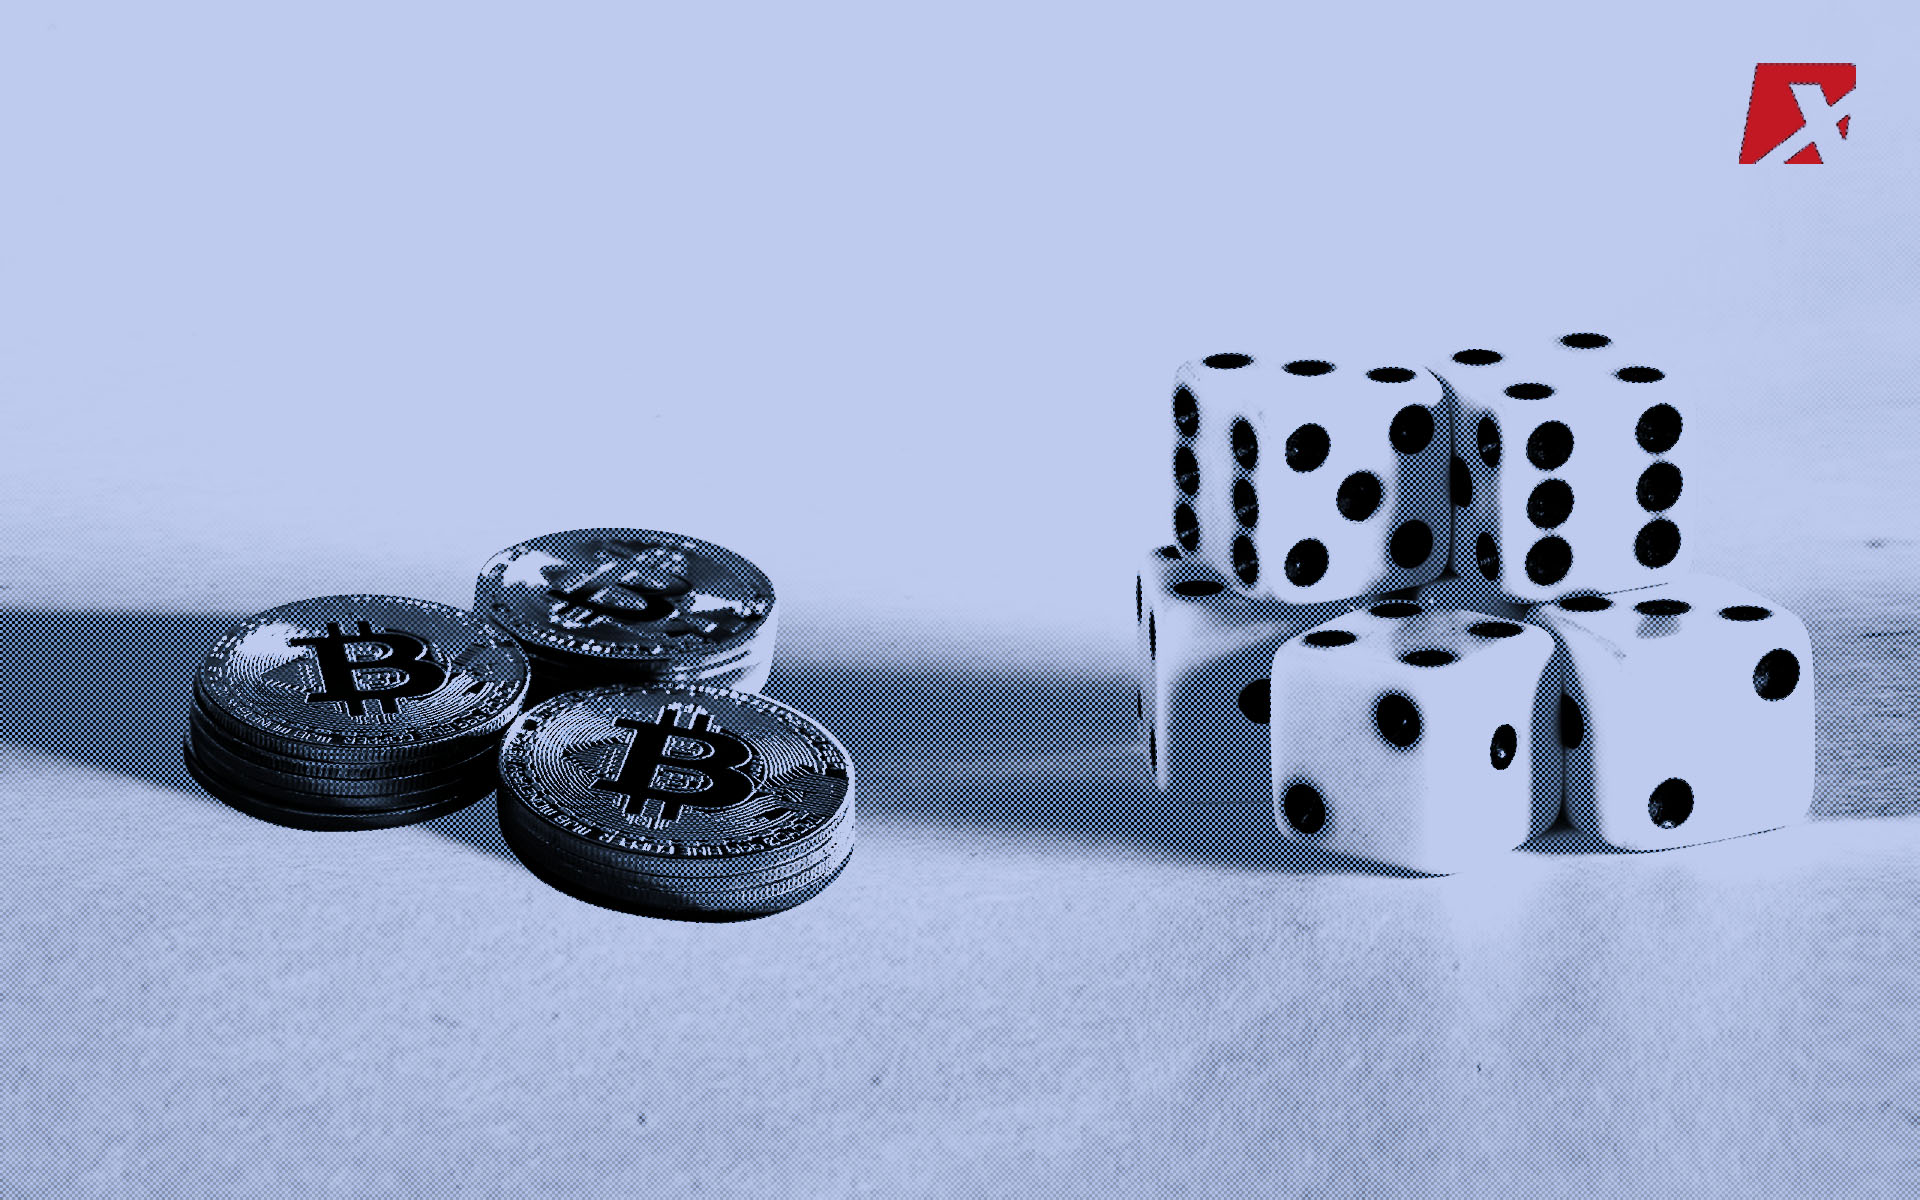 First On-Chain Atomic Bet Shows Continuing Innovation from BitCoin